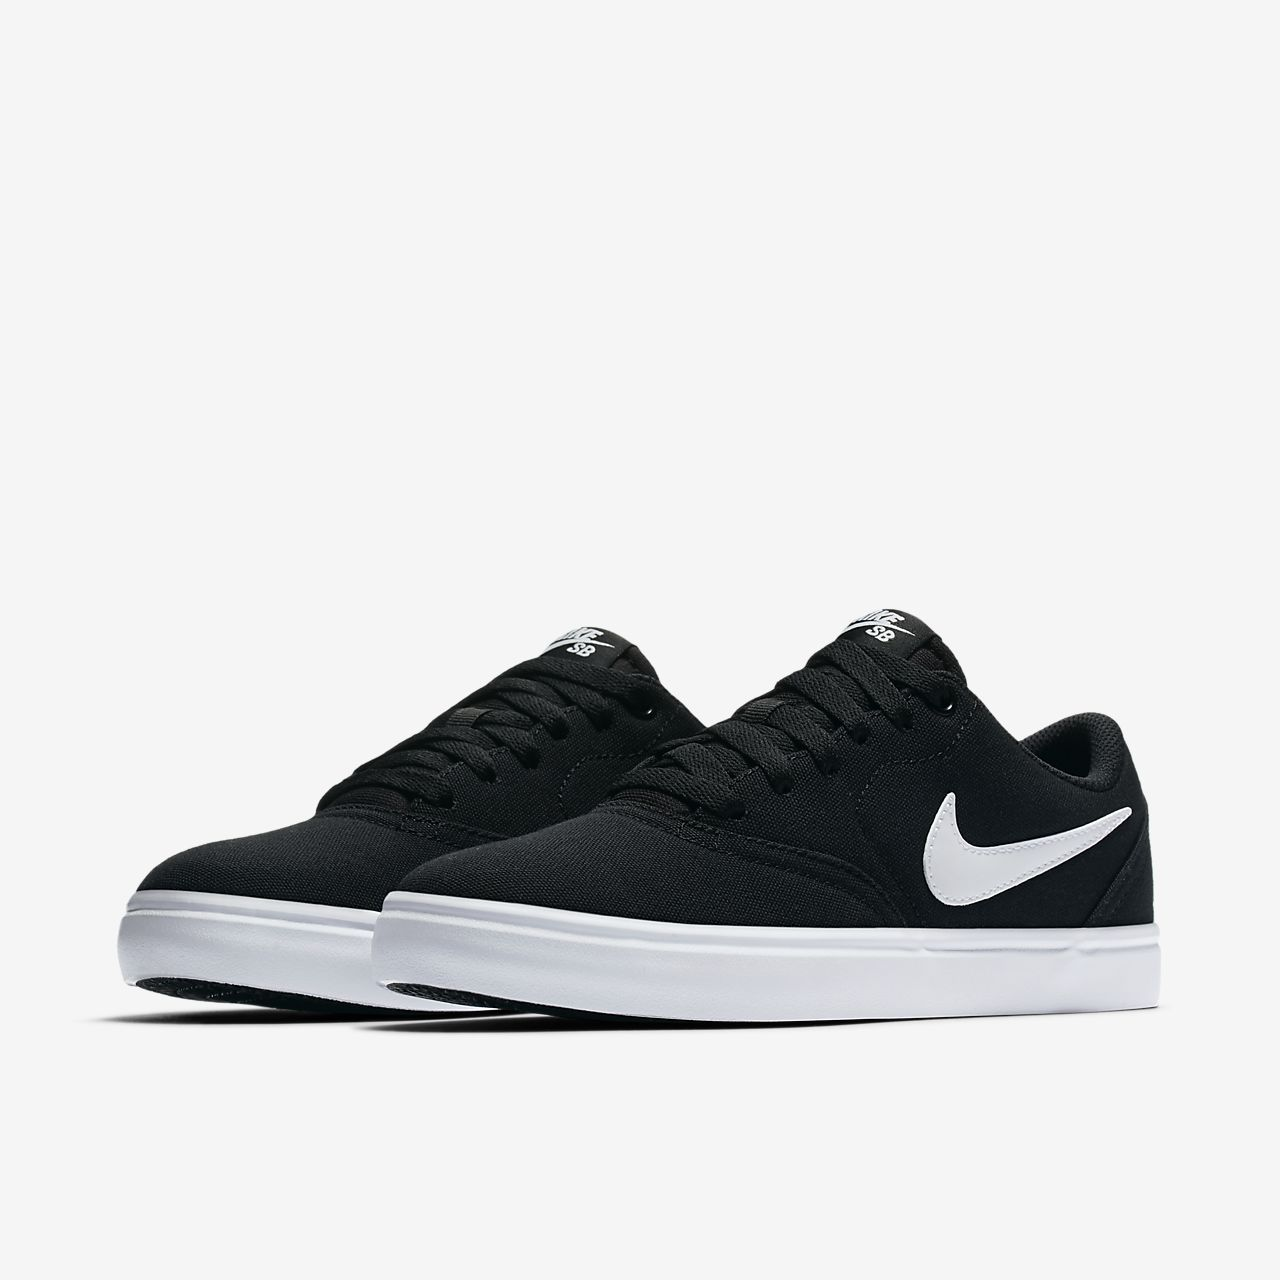 5cb83dce9 Nike Women s Skateboarding Shoe SB Check Solarsoft Canvas